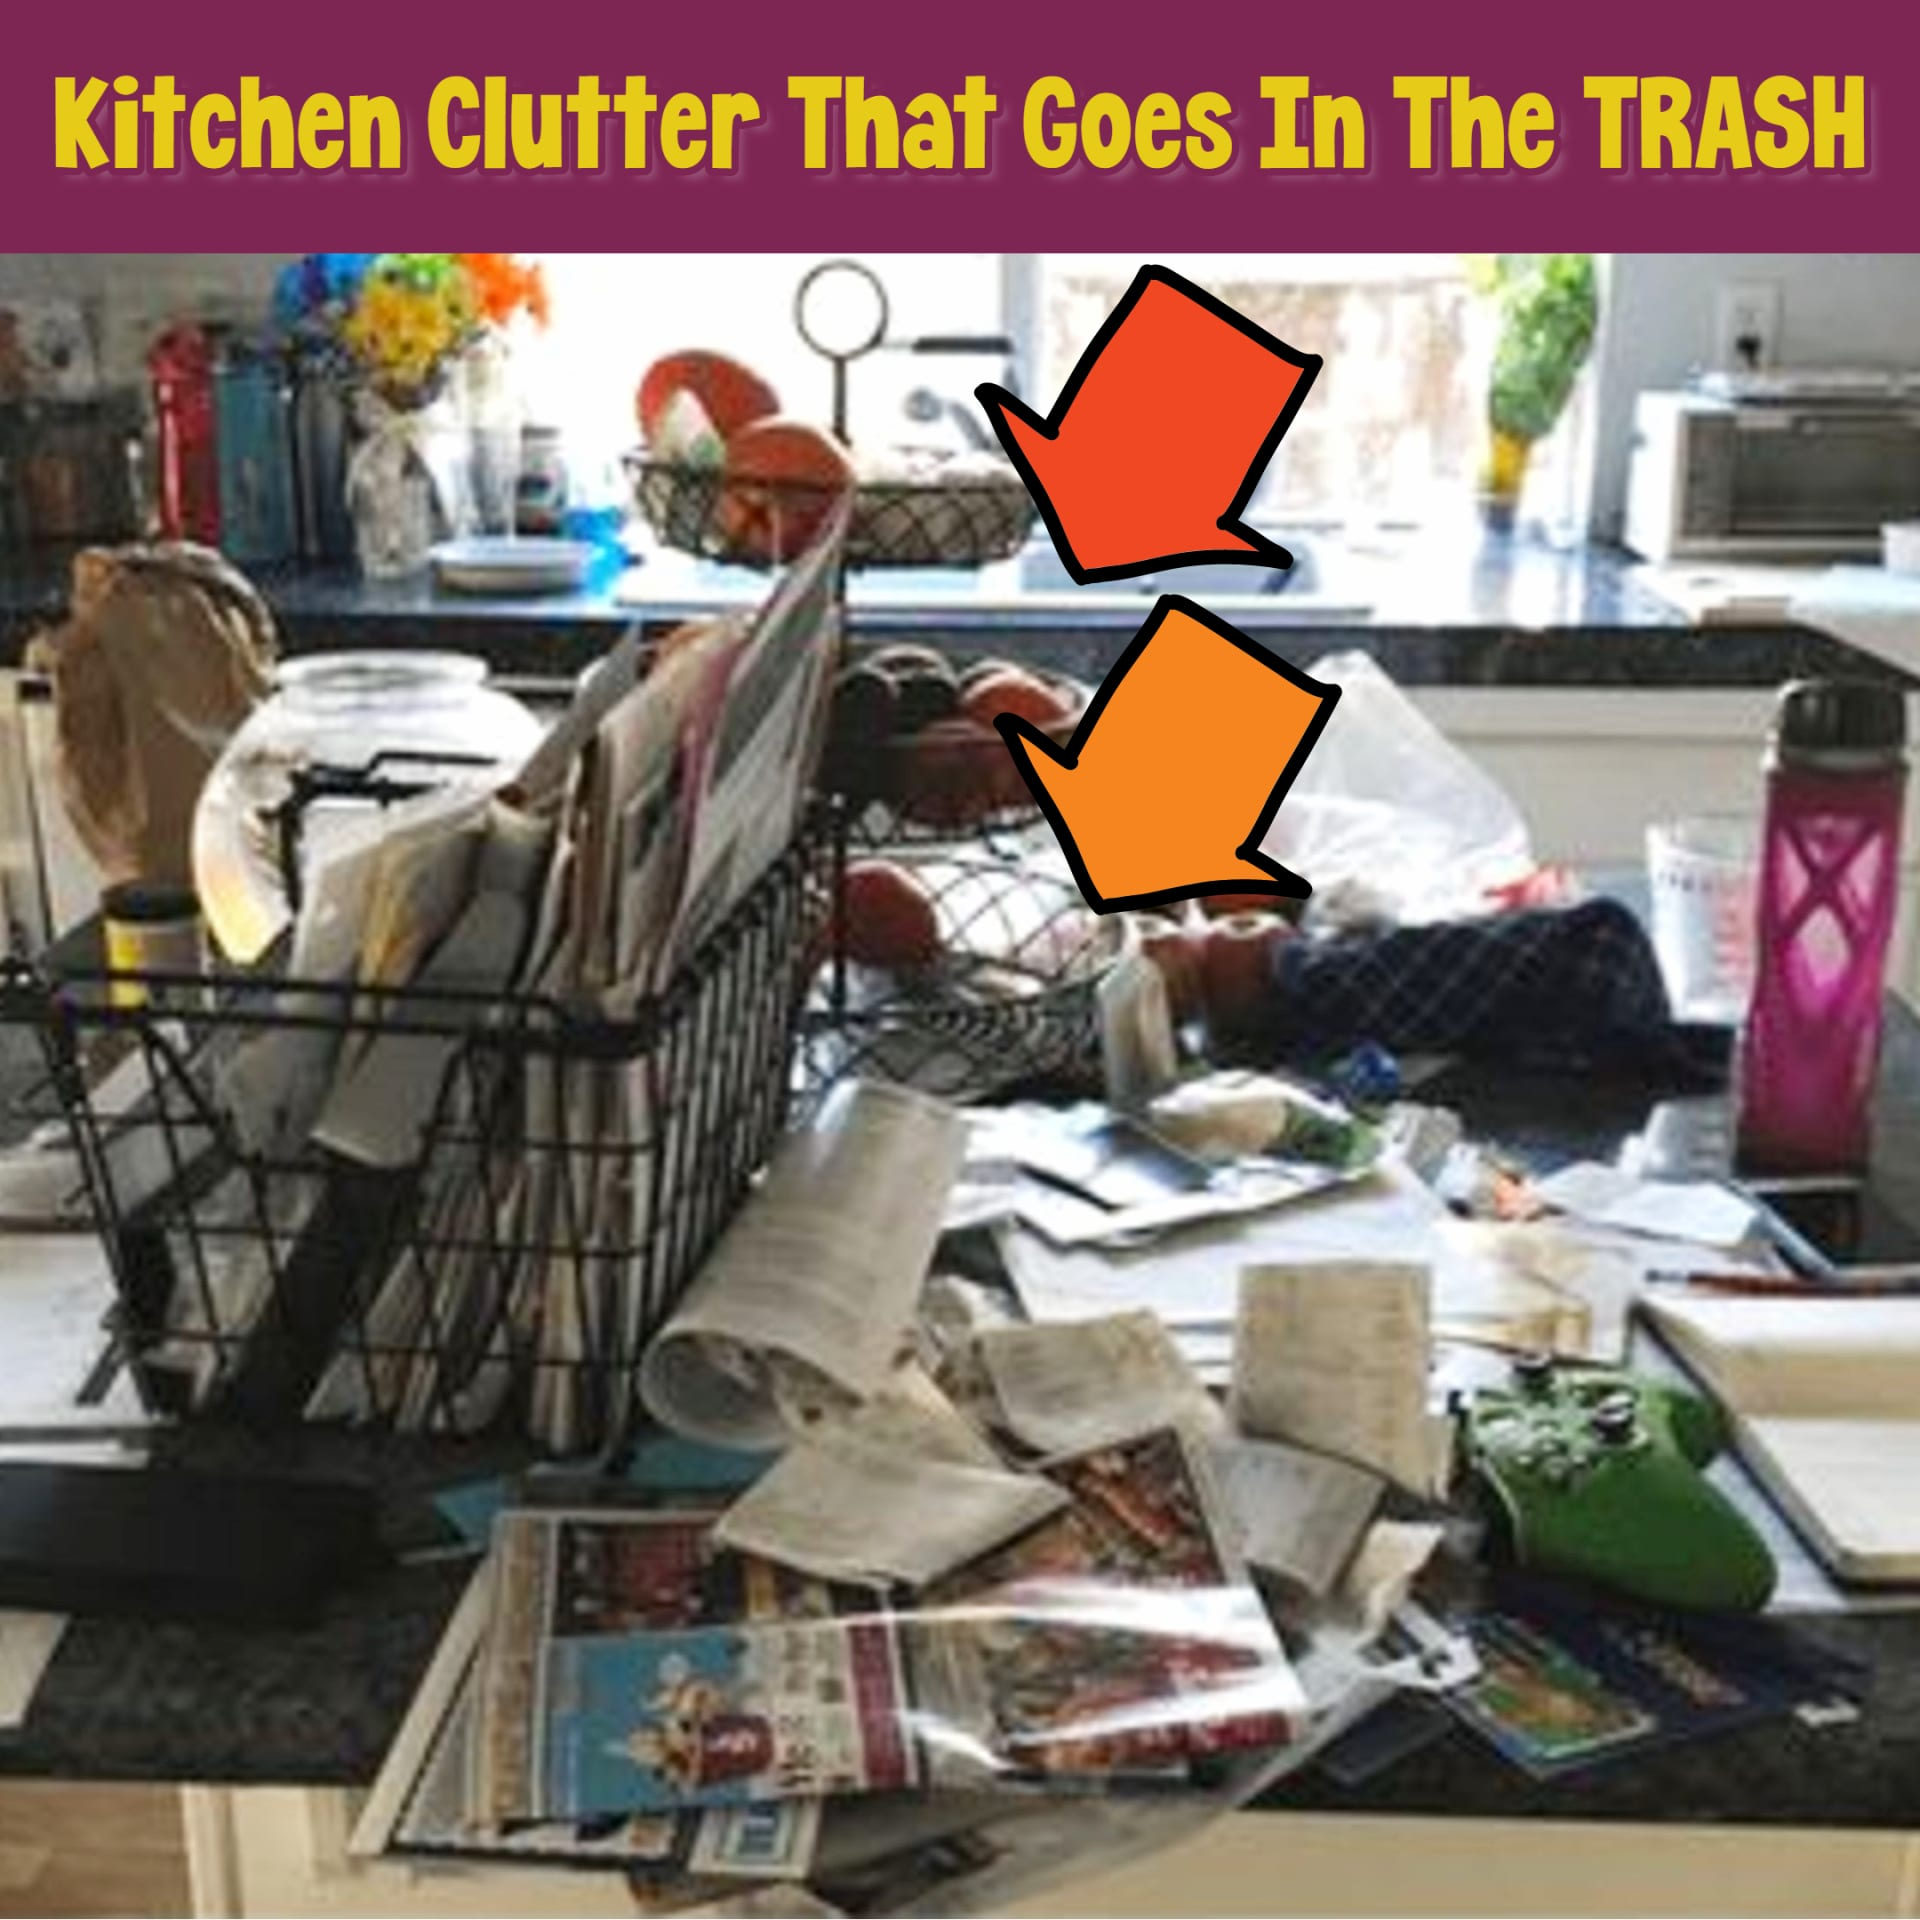 declutter kitchen counters and countertops with these easy DIY kitchen clutter solutions